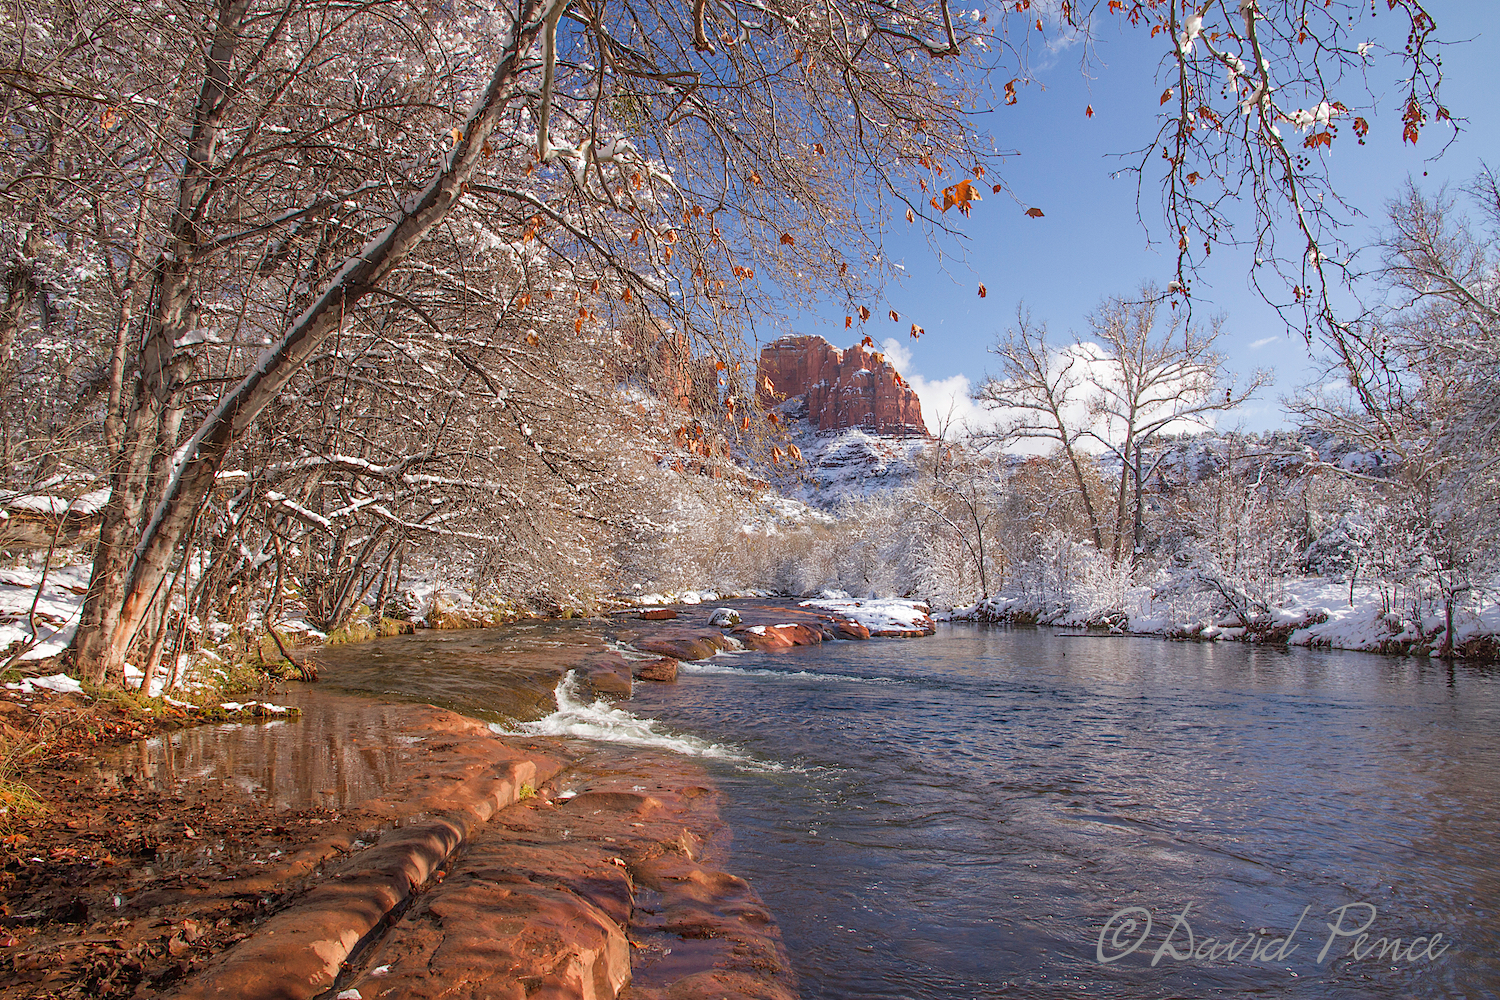 David's image, for me, captures a much better representation of the red rock, which then complements that lovely orange leaf above and the red in Cathedral Rock in the background. He cuts out the area across Oak Creek which really does not add anything to the image. It is a much tighter, more focused and interesting image than the one I took above. If you are asking what this would look like if the water was smooth and silky, you are asking a good question! EXIF: ISO 200, 16mm focal length, 1 EV, f/9 at 1/100 with Canon EOS 7D and EF-S15-85mm f/3.5-5.6 IS USM lens. Minimal post processing.